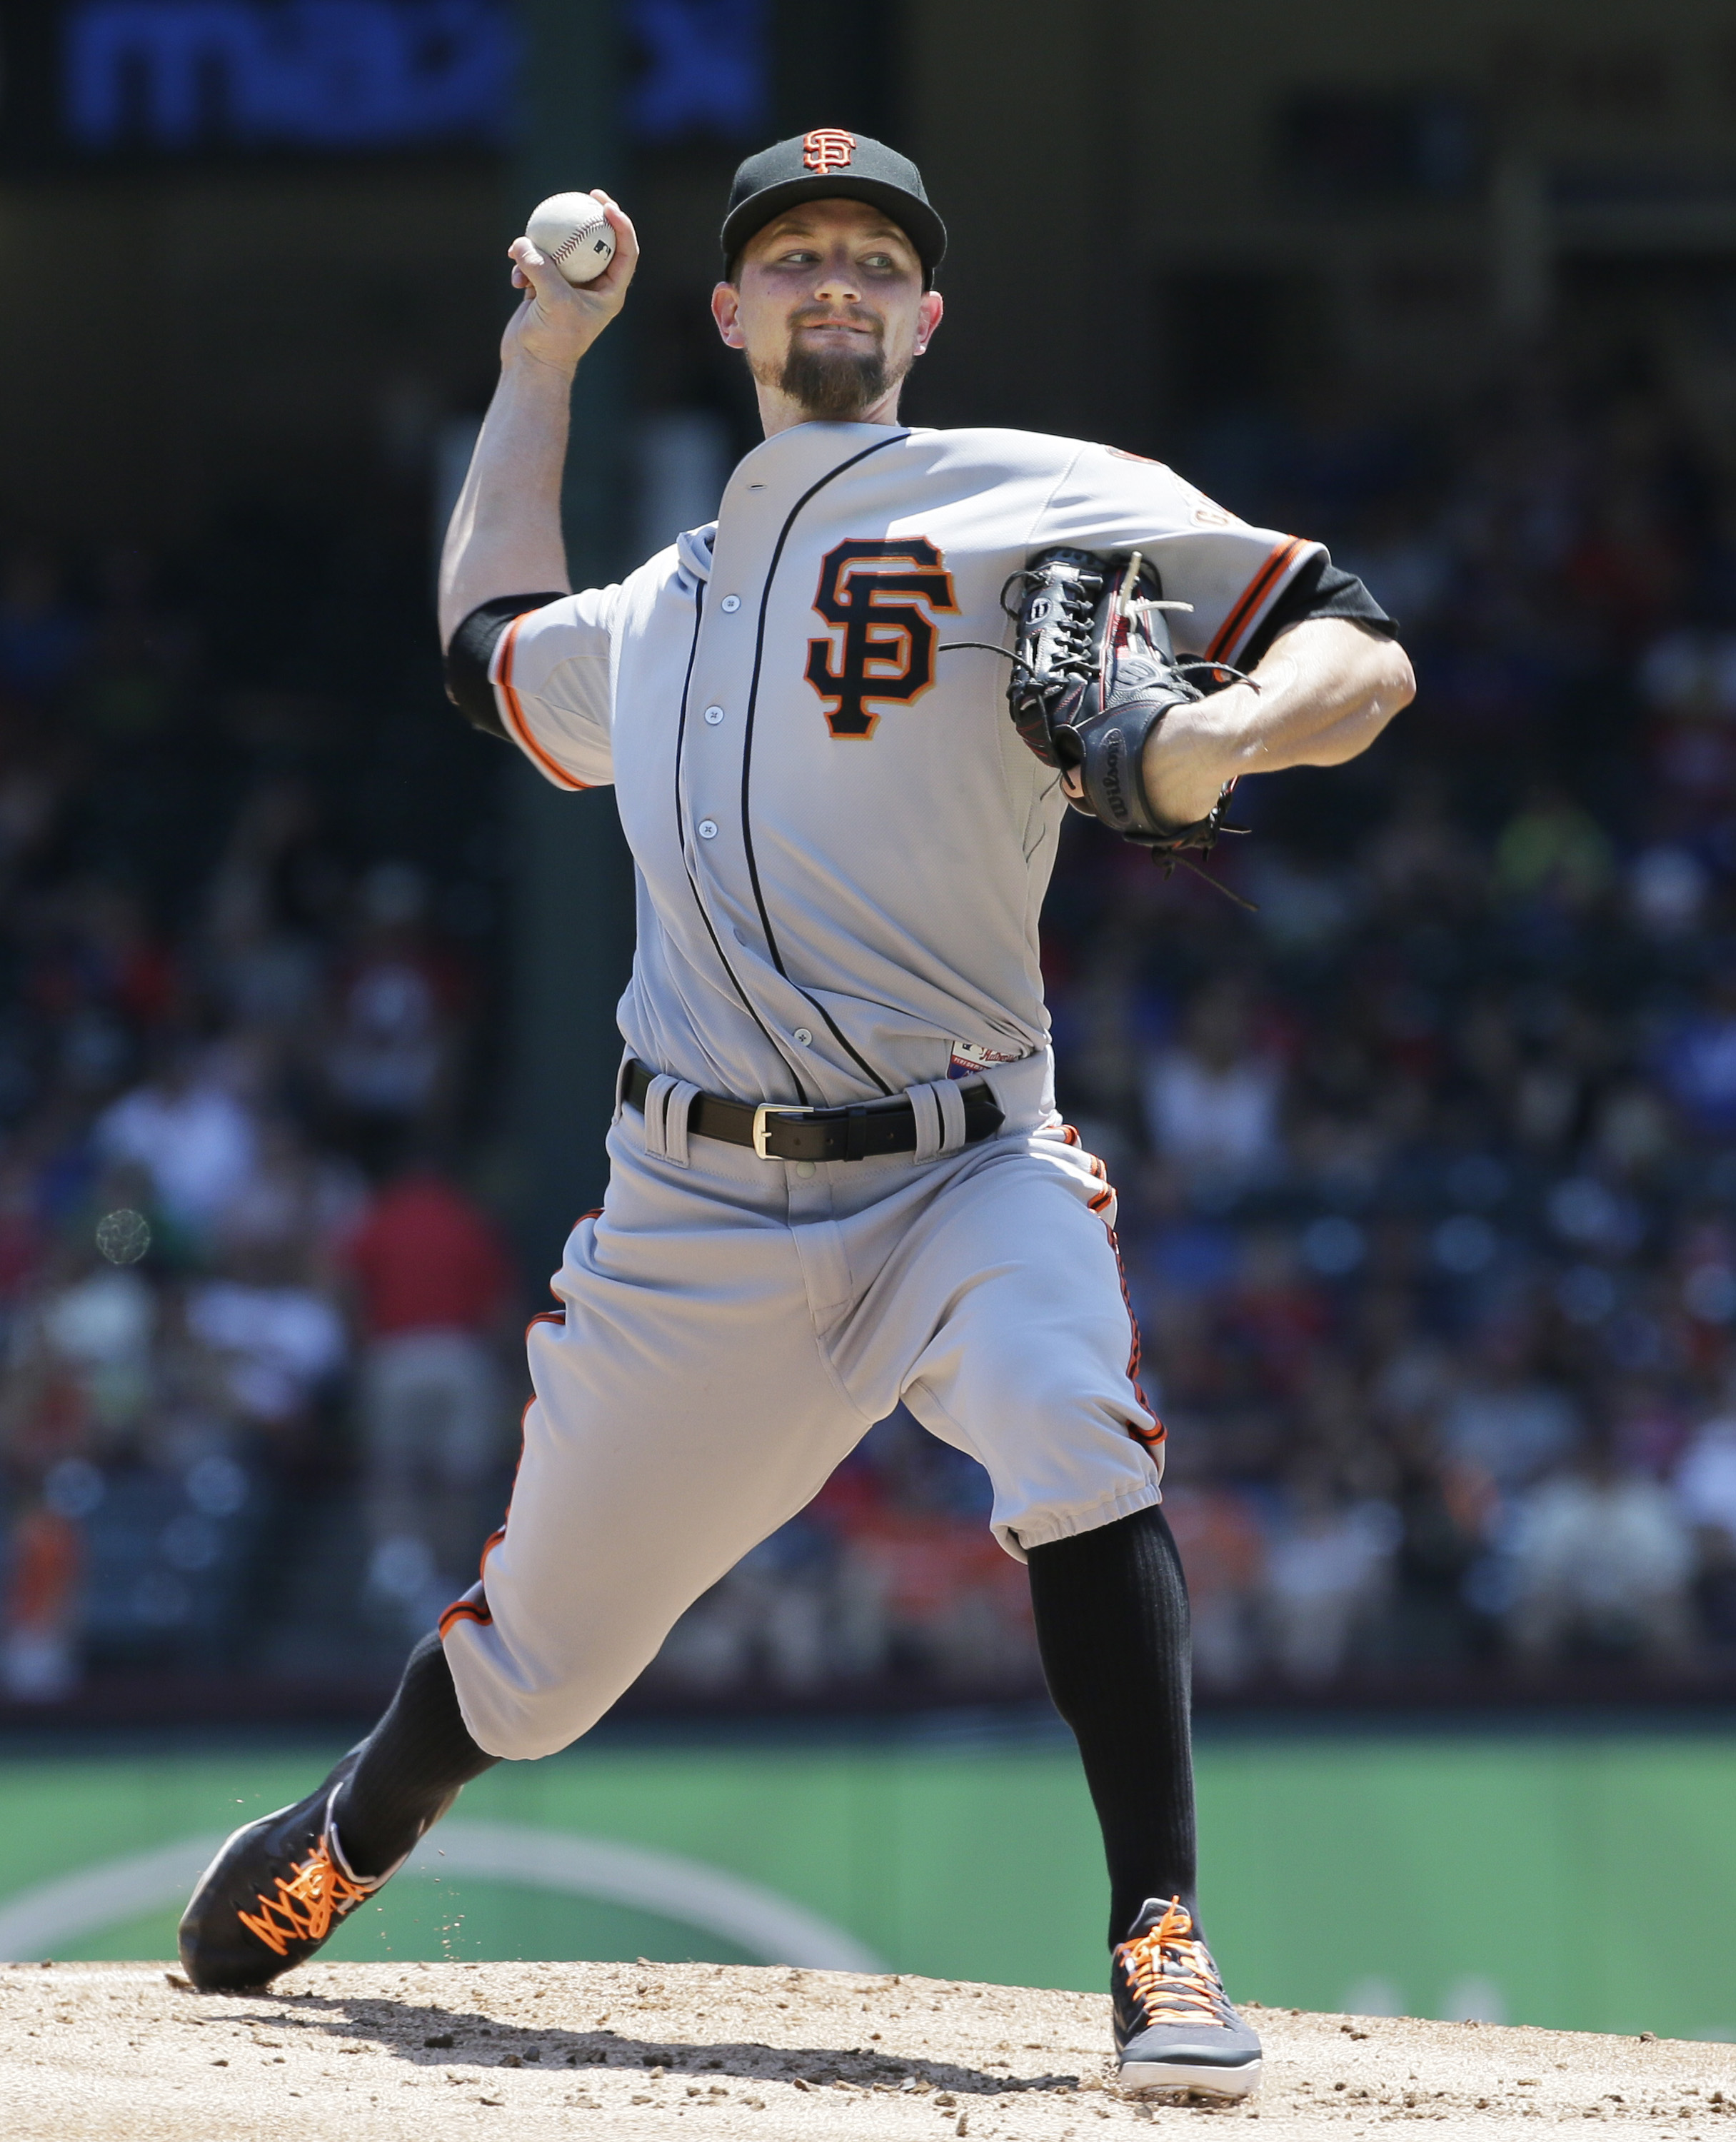 San Francisco Giants starting pitcher Mike Leake throws during the first inning of a baseball game against the Texas Rangers in Arlington, Texas, Sunday, Aug. 2, 2015. (AP Photo/LM Otero)